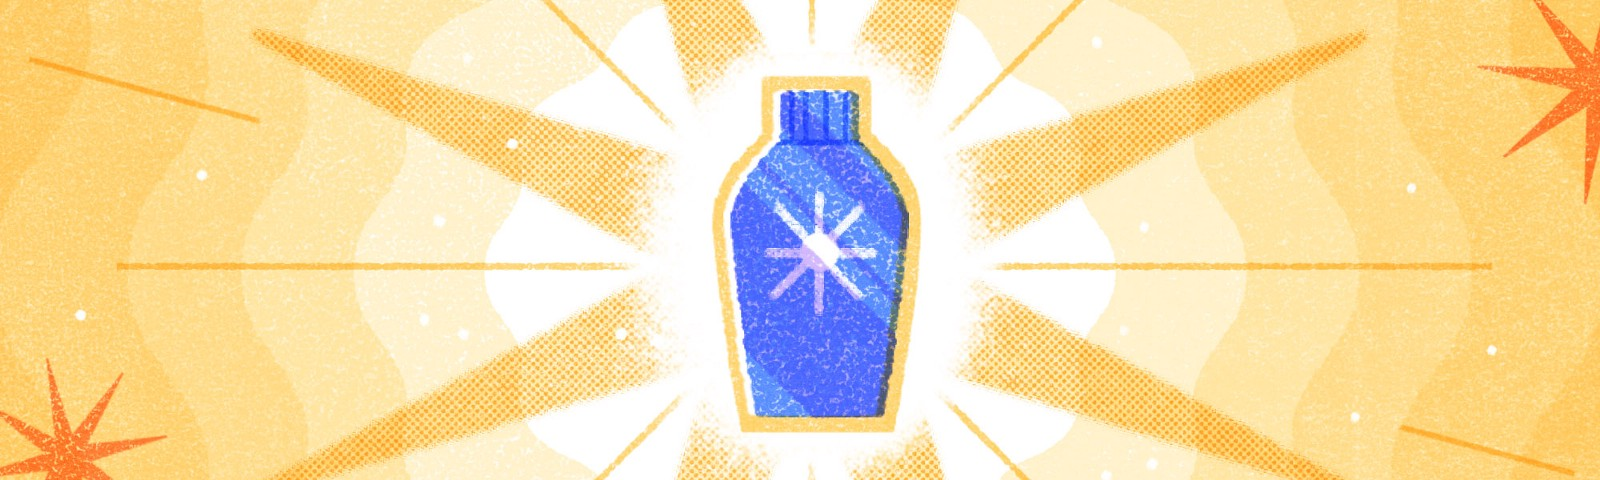 """An illustration of a generic blue bottle with a """"sun"""" shaped icon, set against a bright yellow background, centered on the shape of a sun."""